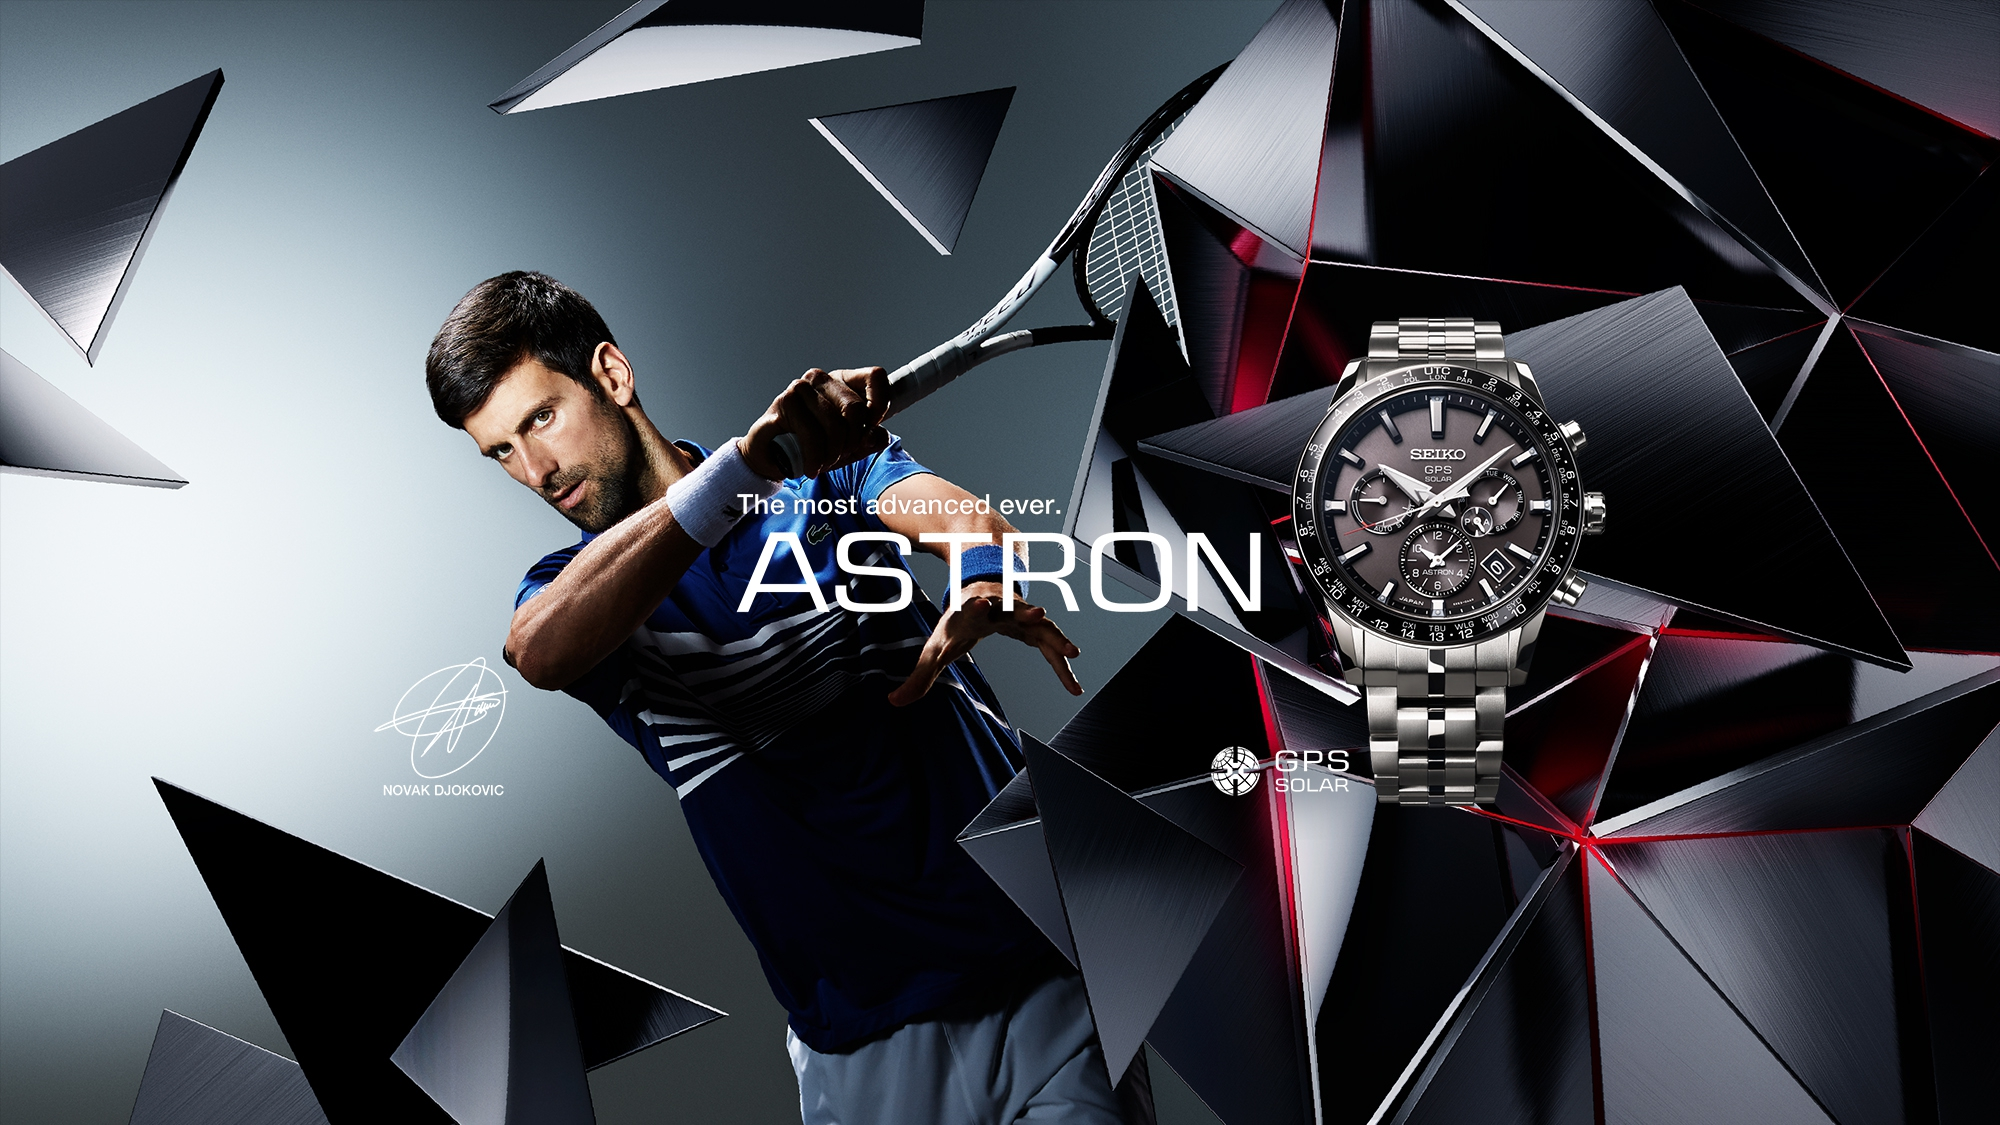 Seiko - ganador de Wimbledon Astron_ND_WebSite-Banner_20190321_PC_18095433480648_jpg